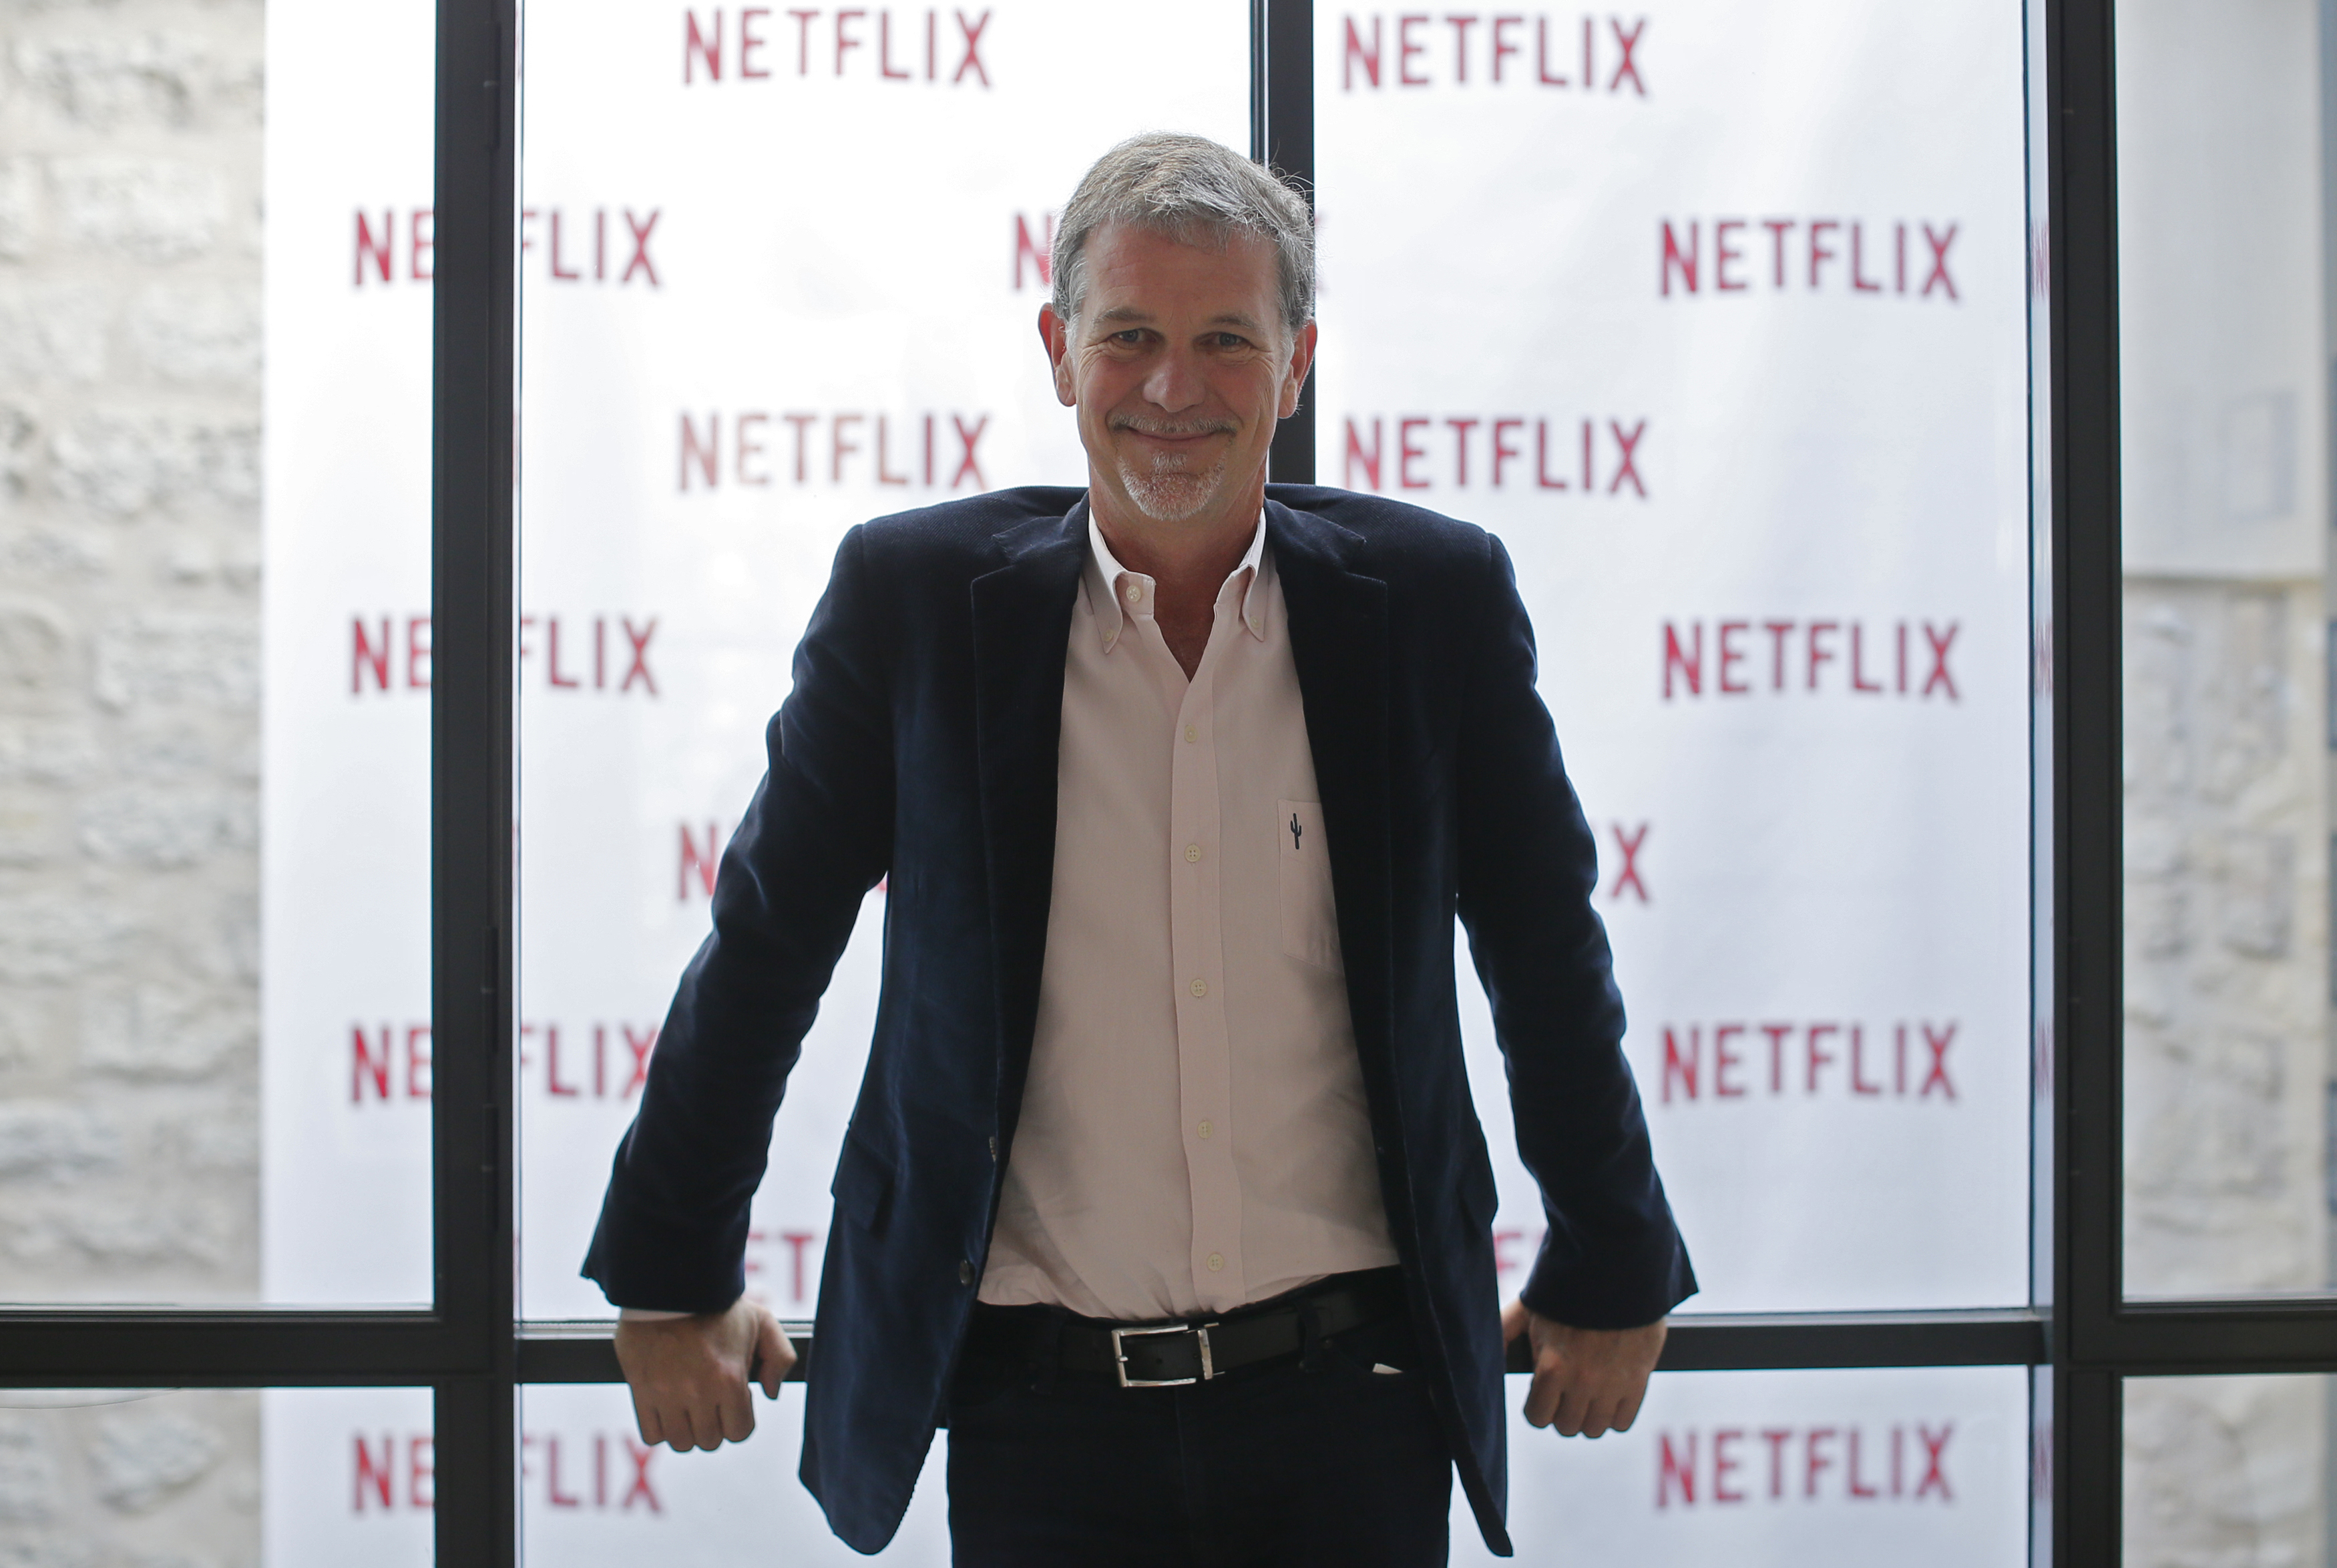 Reed Hastings, founder and CEO of Netflix, poses during an interview with Reuters in Paris